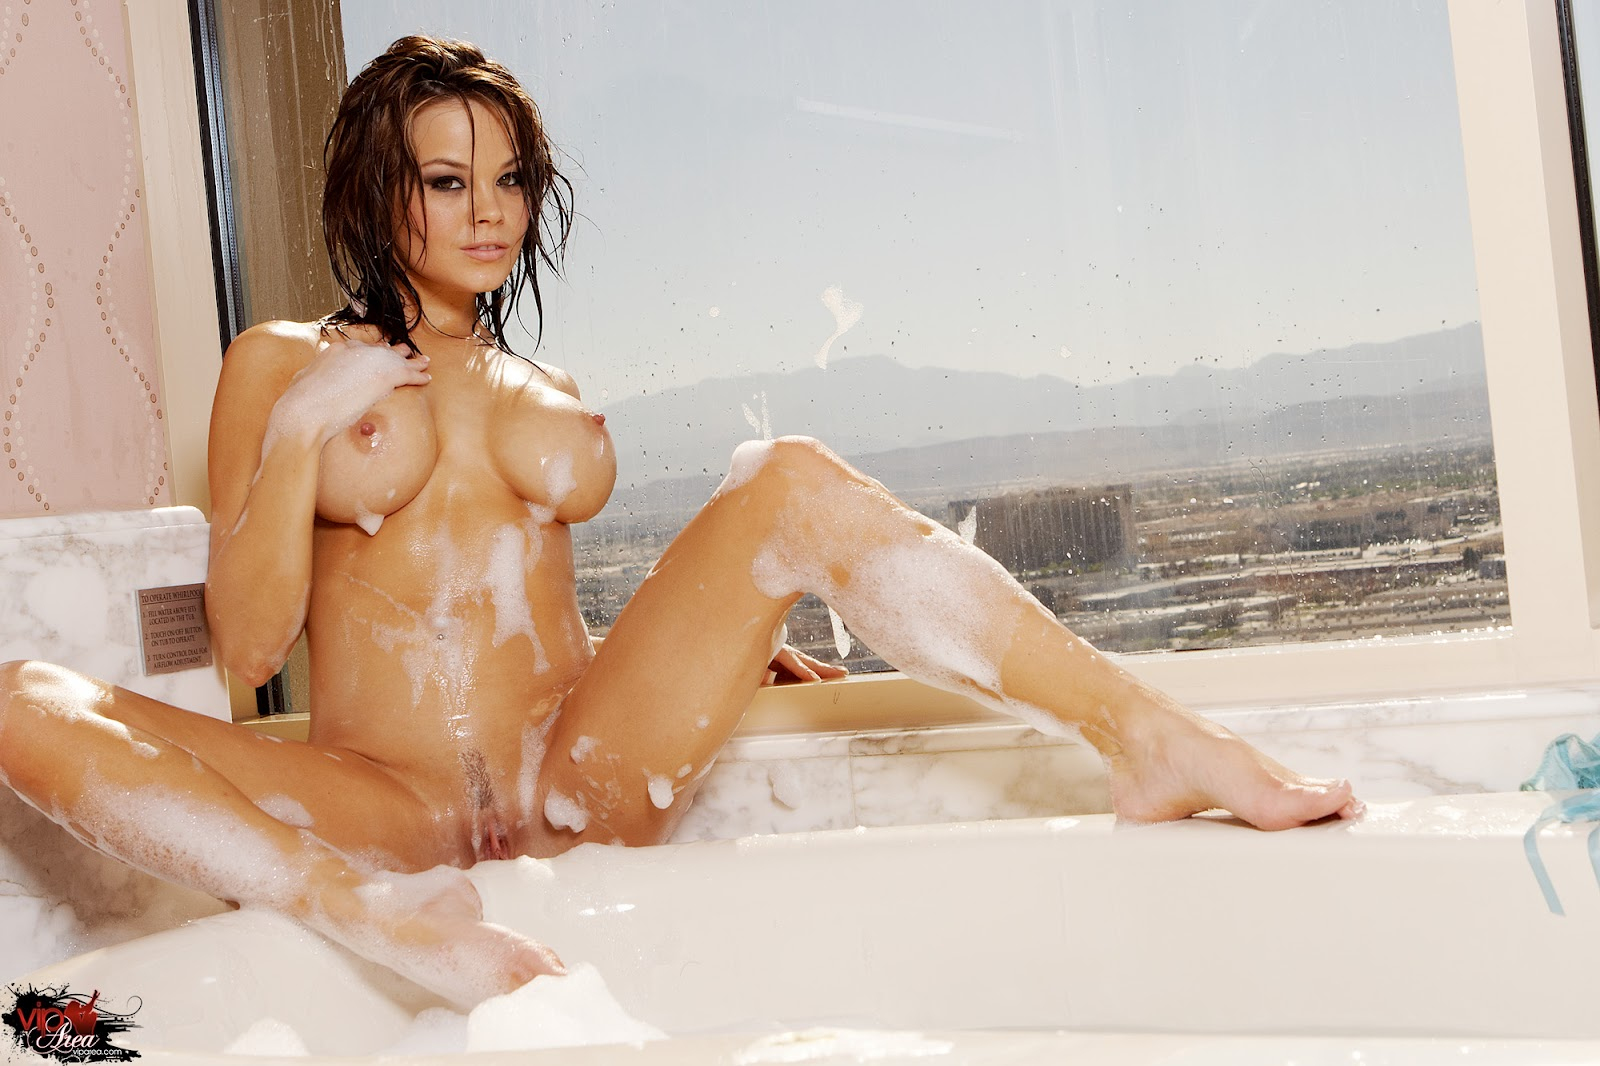 Lady suck the hottest nude wet pussyon earth